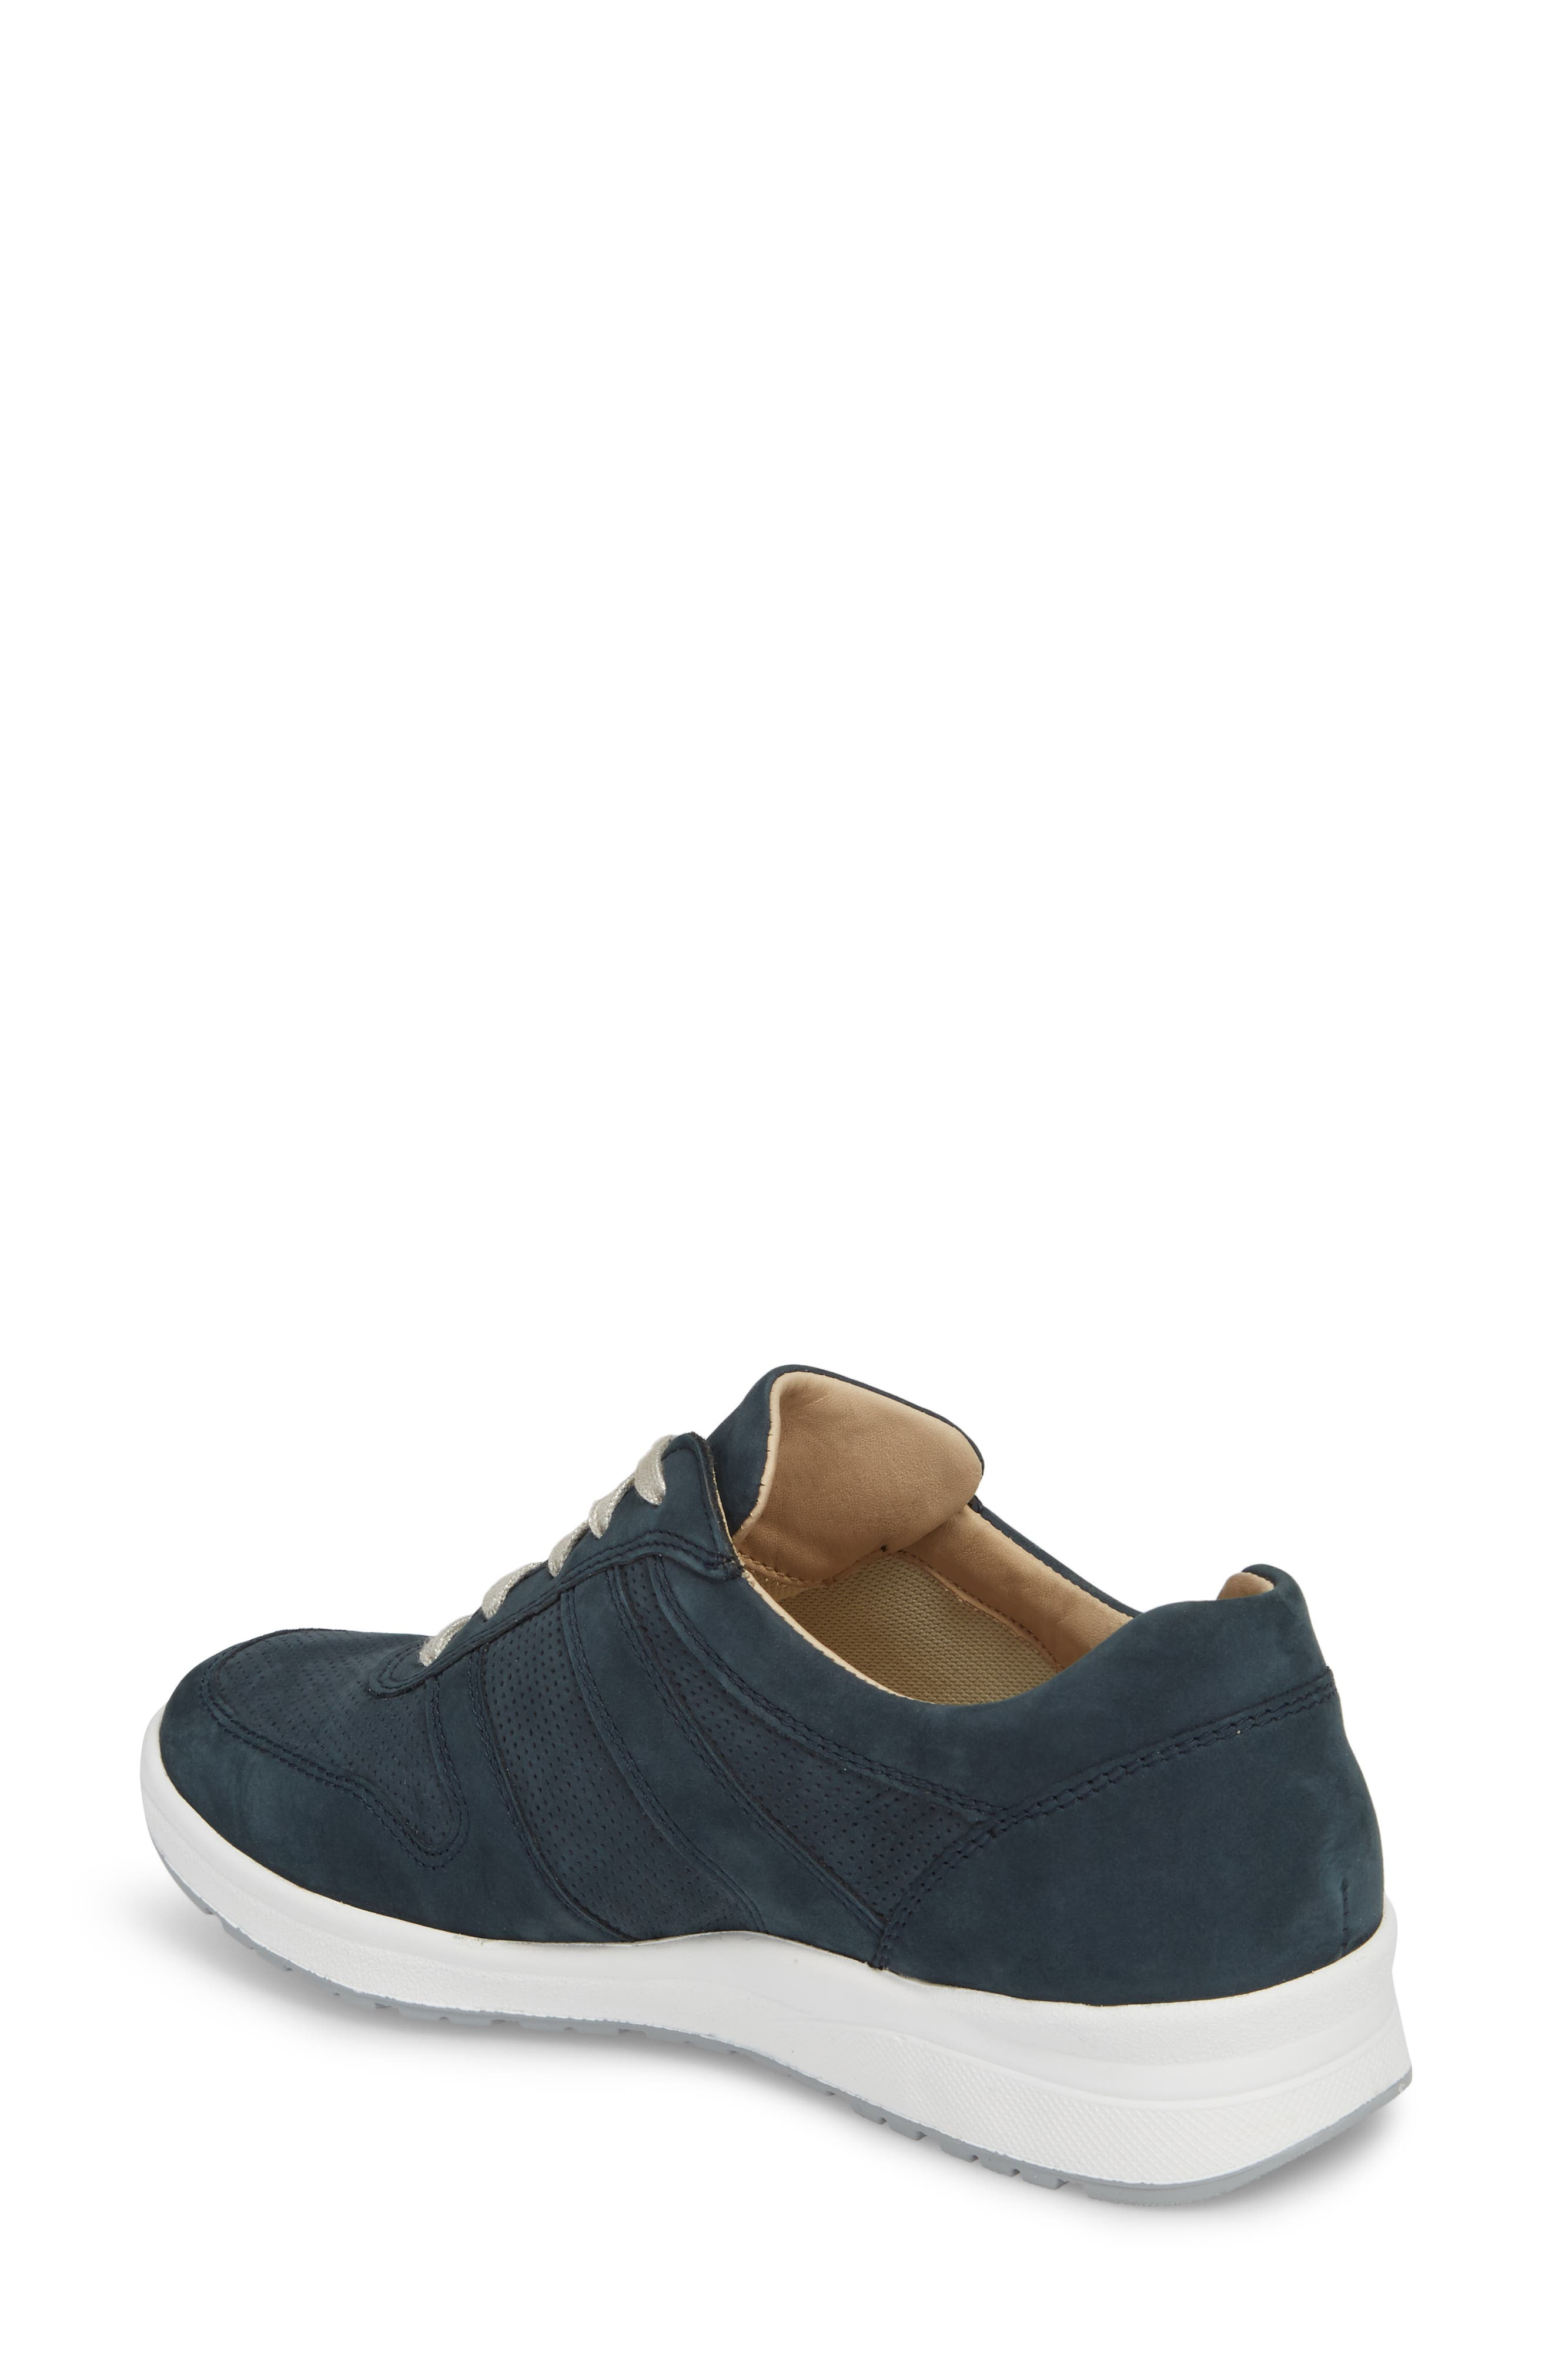 MEPHISTO, Rebecca Perforated Sneaker, Alternate thumbnail 2, color, NAVY